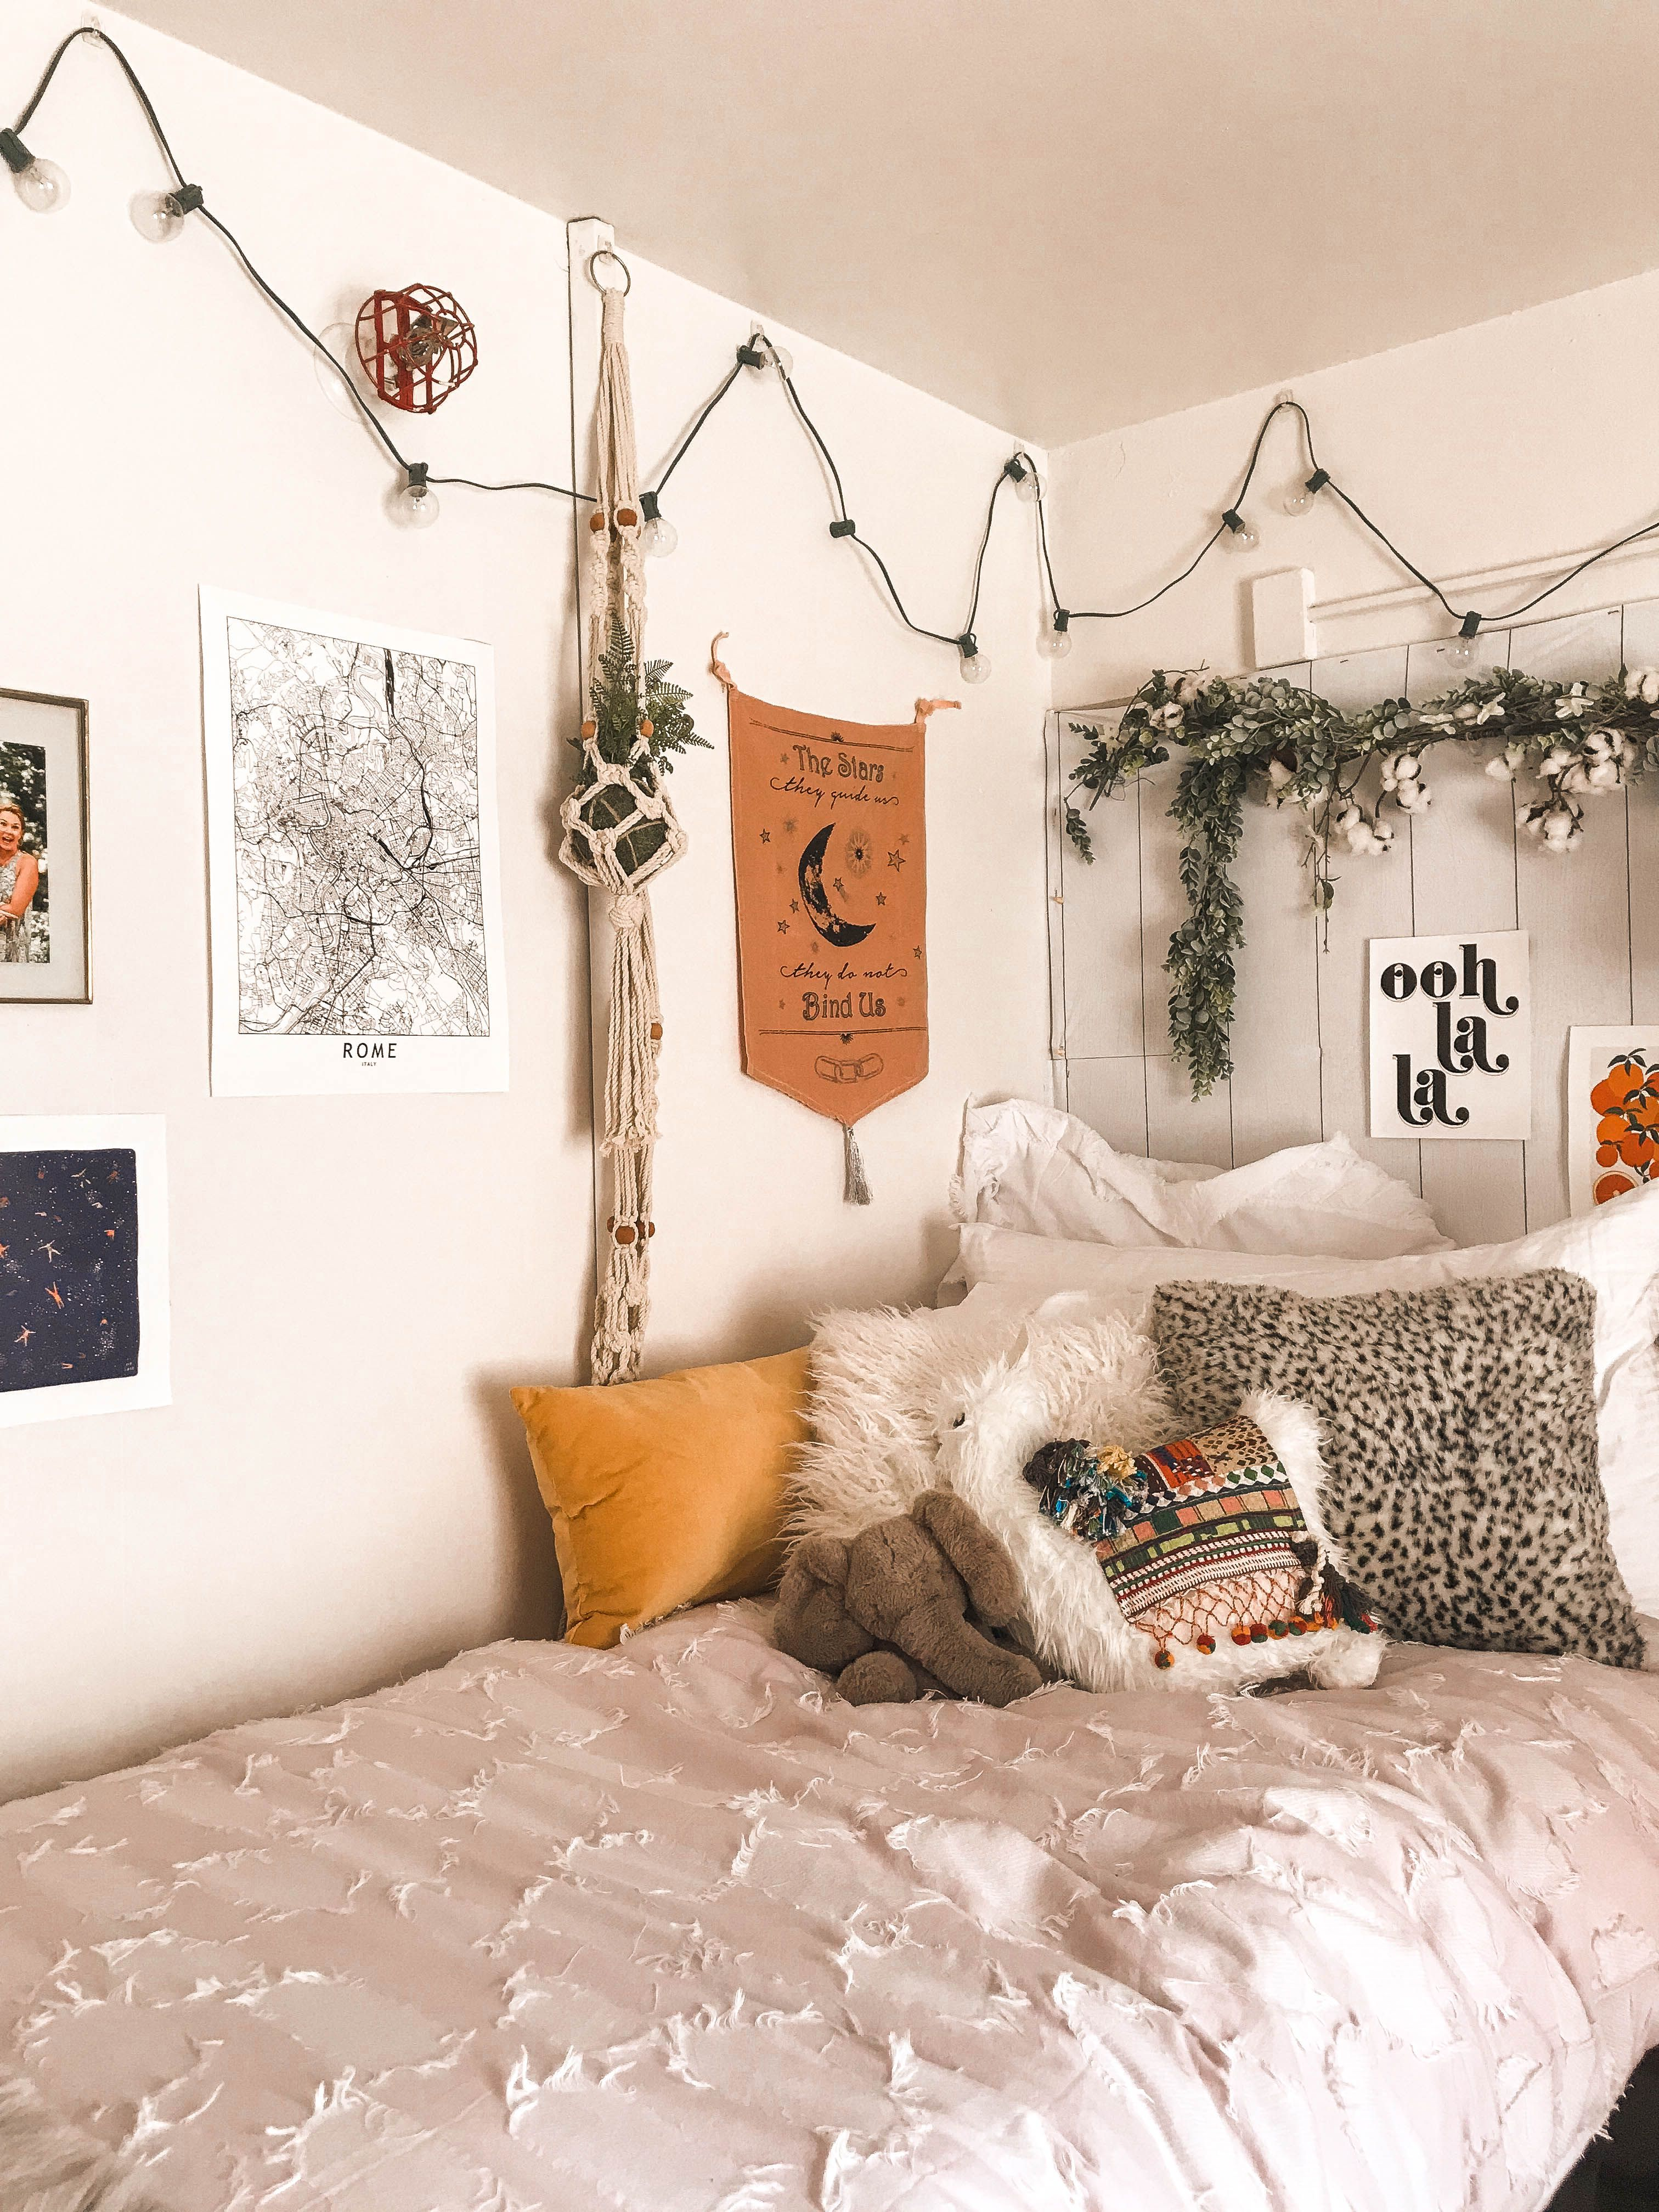 Pinterest kimoyaawalker dream bedroom  inspo home also stylish cool dorm rooms style decor ideas in room rh